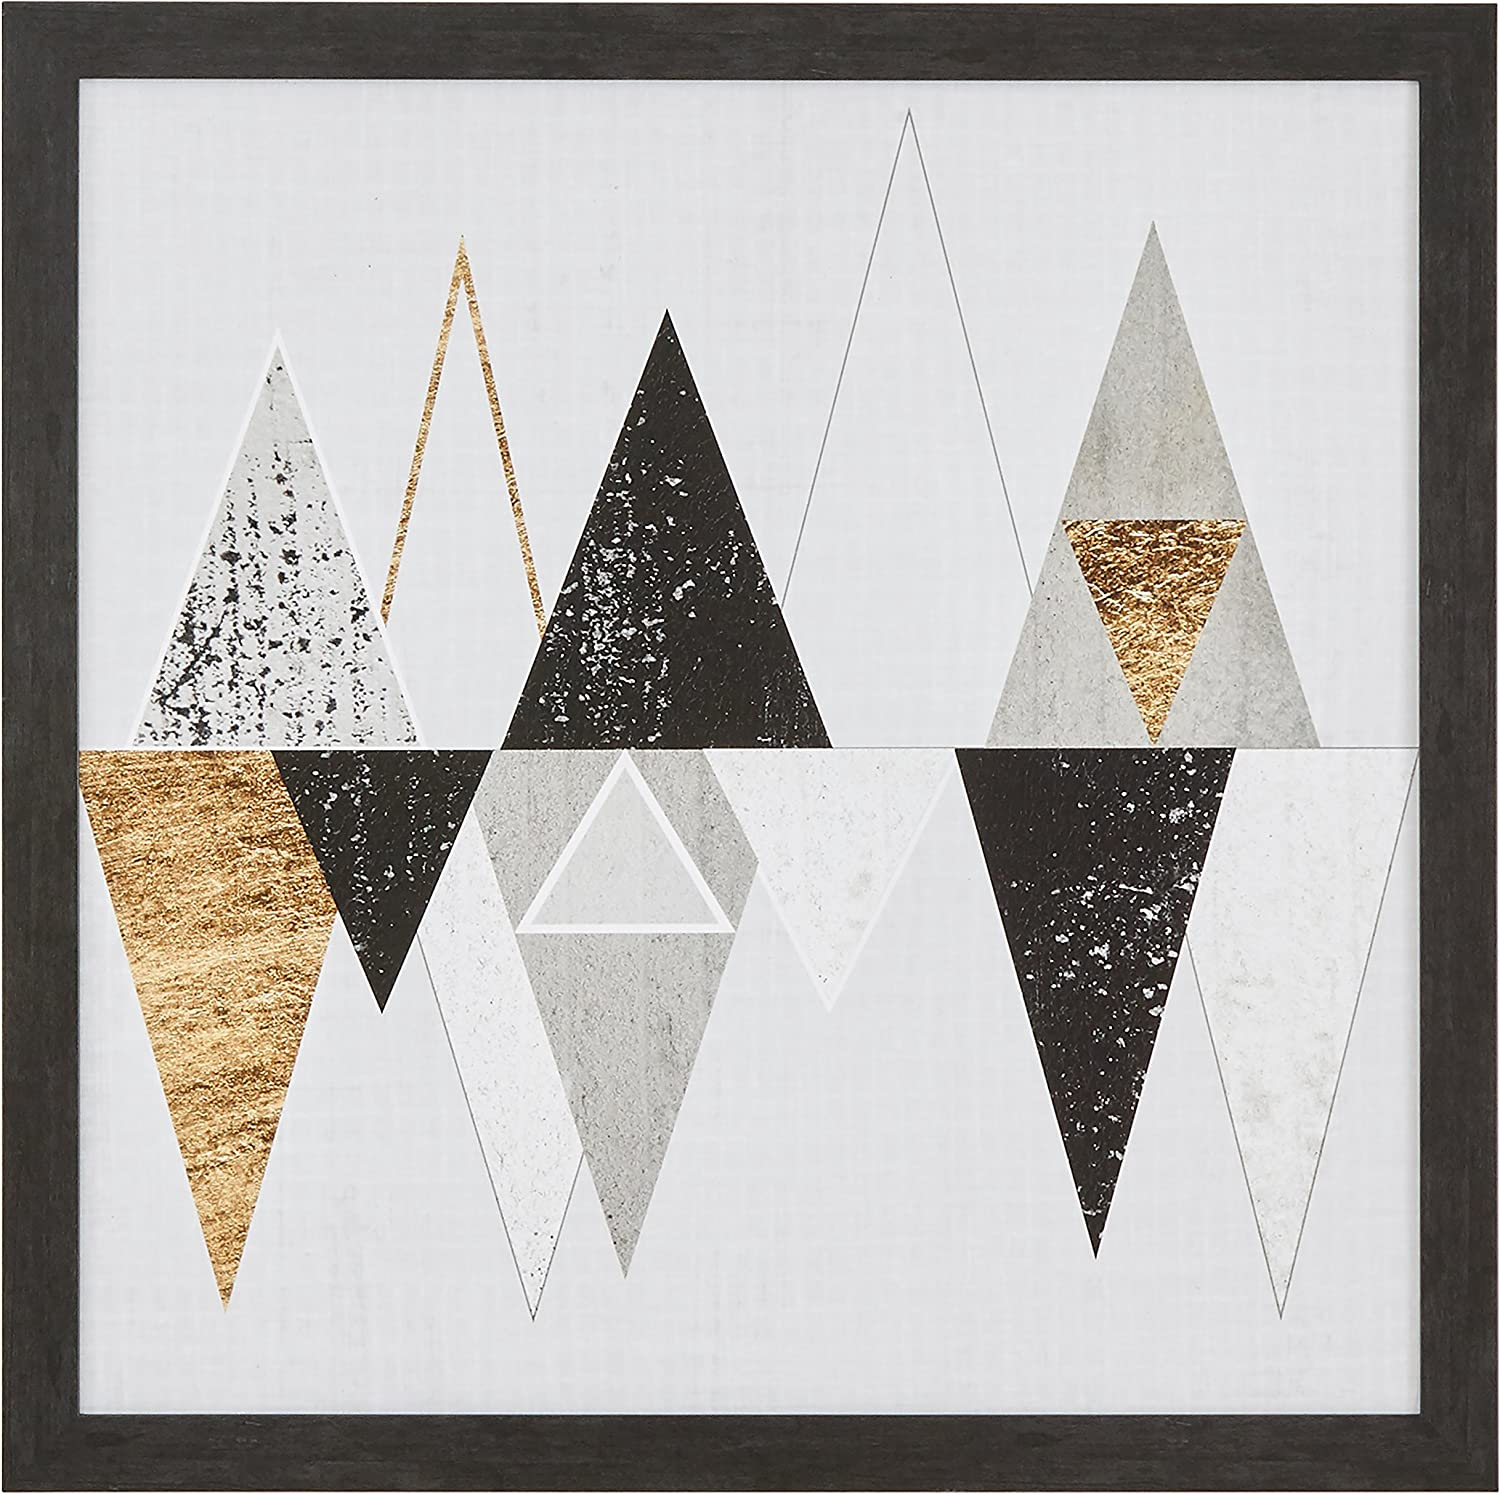 Amazon Com Amazon Brand Rivet Abstract Geometric Triangles Wall Art Decor 33 X 33 Frame Black Posters Prints